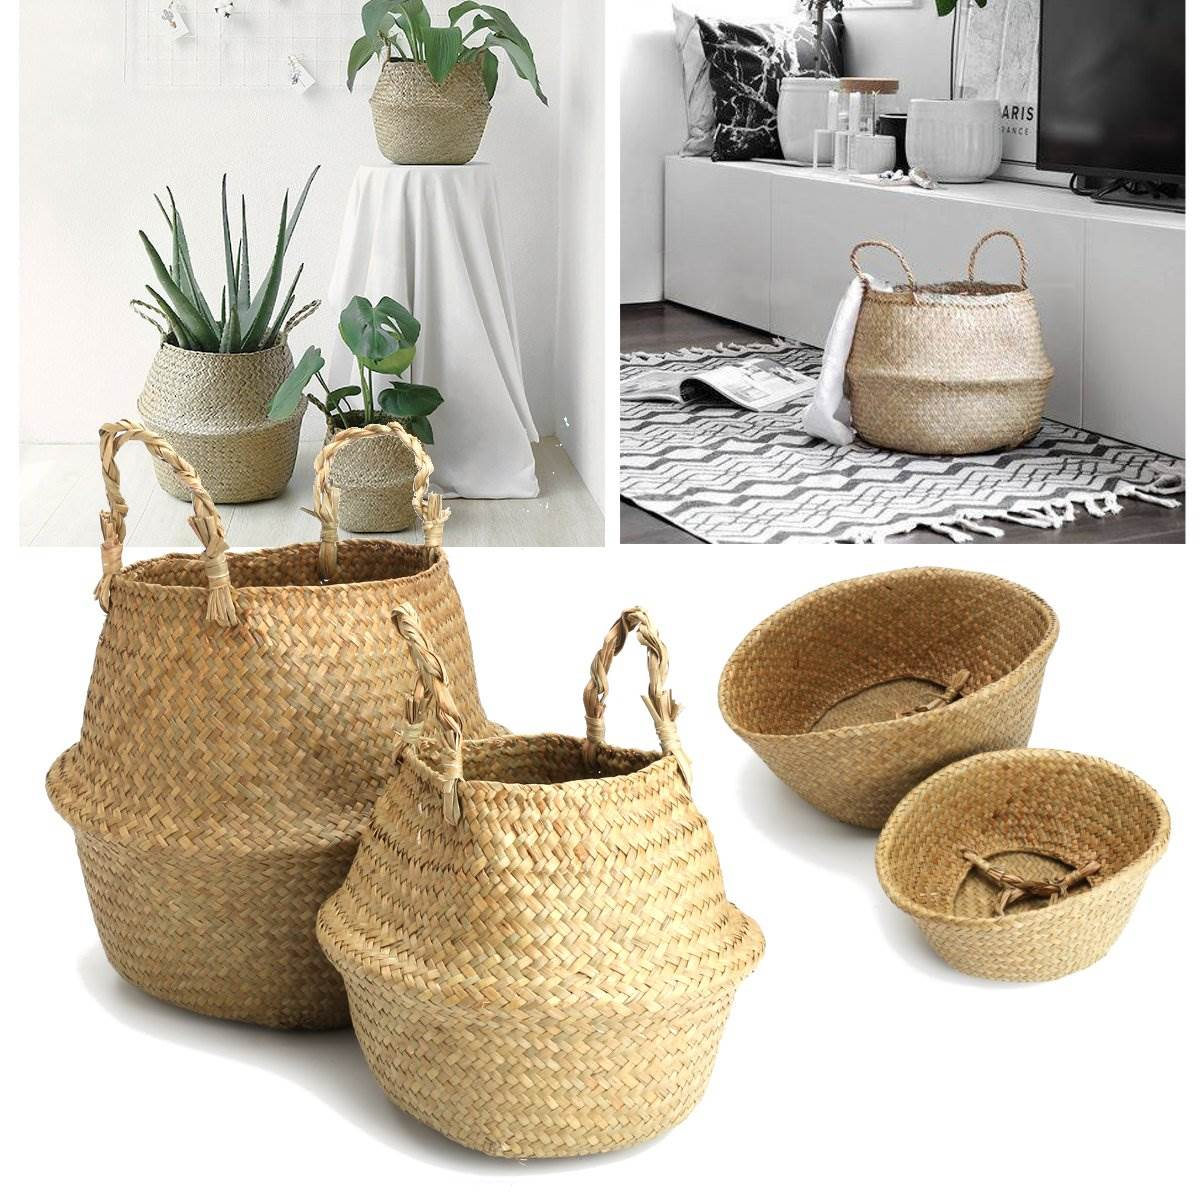 rattan belly basket natural storage basket plant toys laundry storage holder container home plants flower decoration - Decorative Storage Baskets